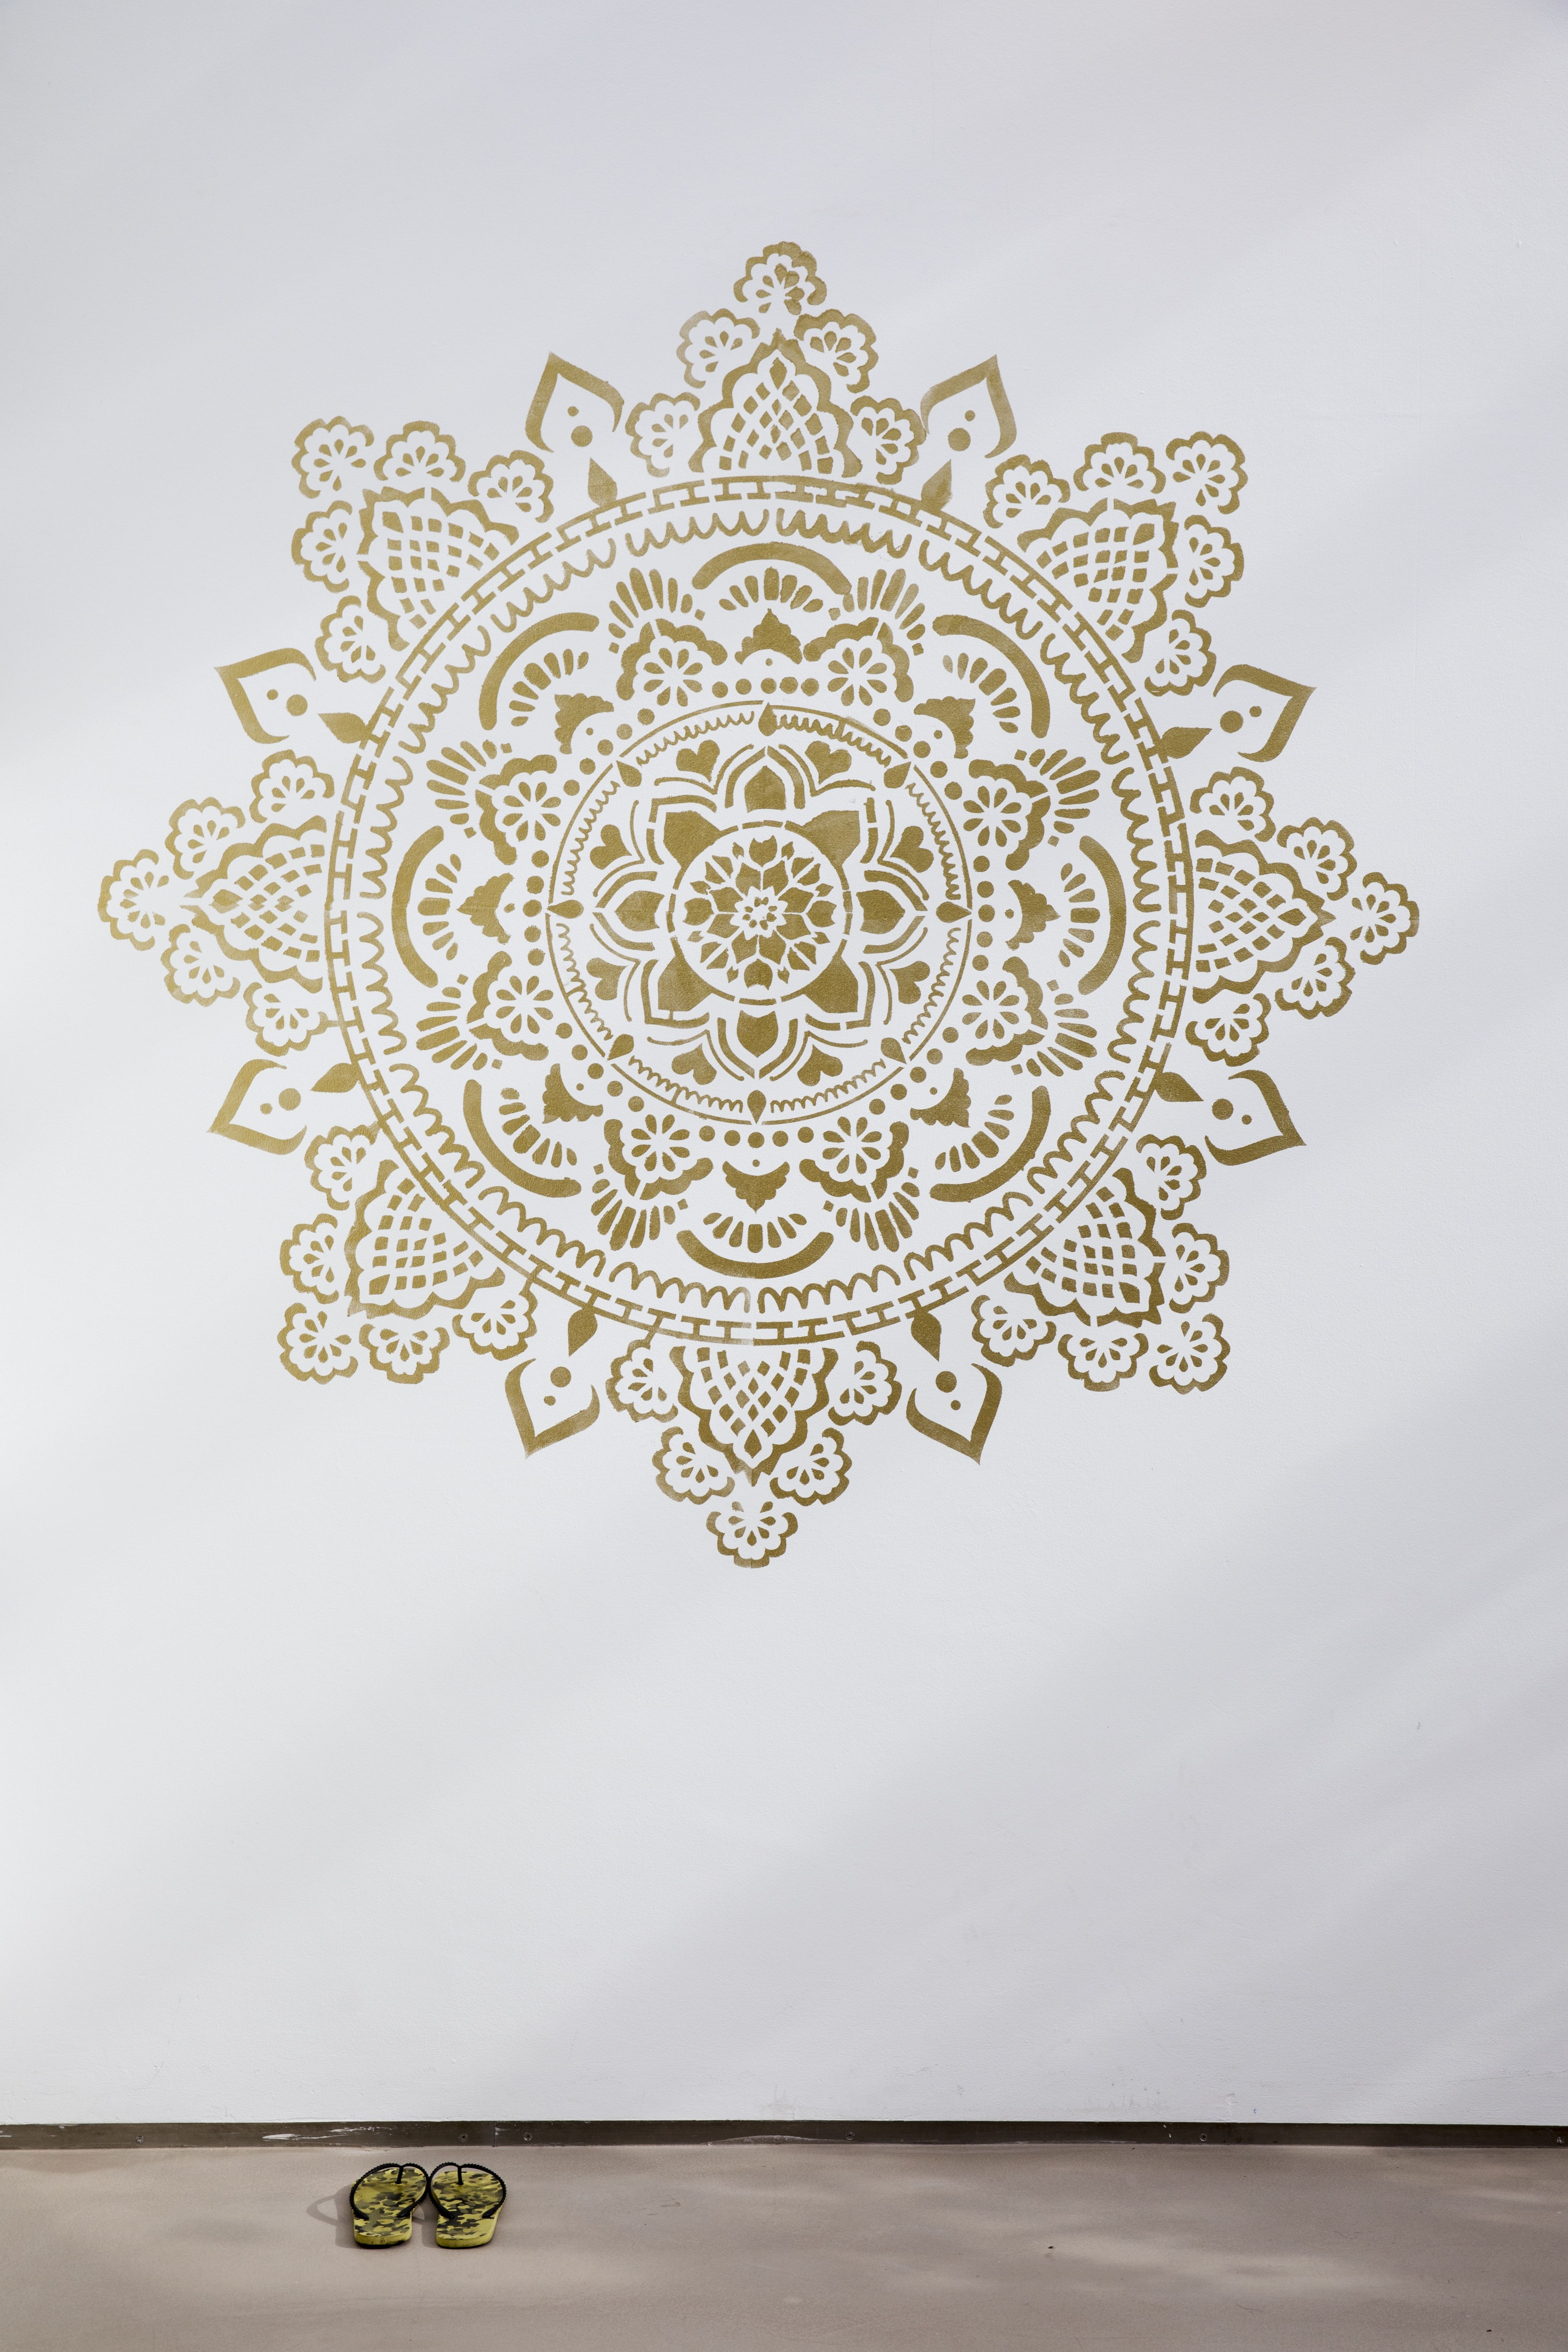 Mandala Wall Stencils DIY for Home Decor